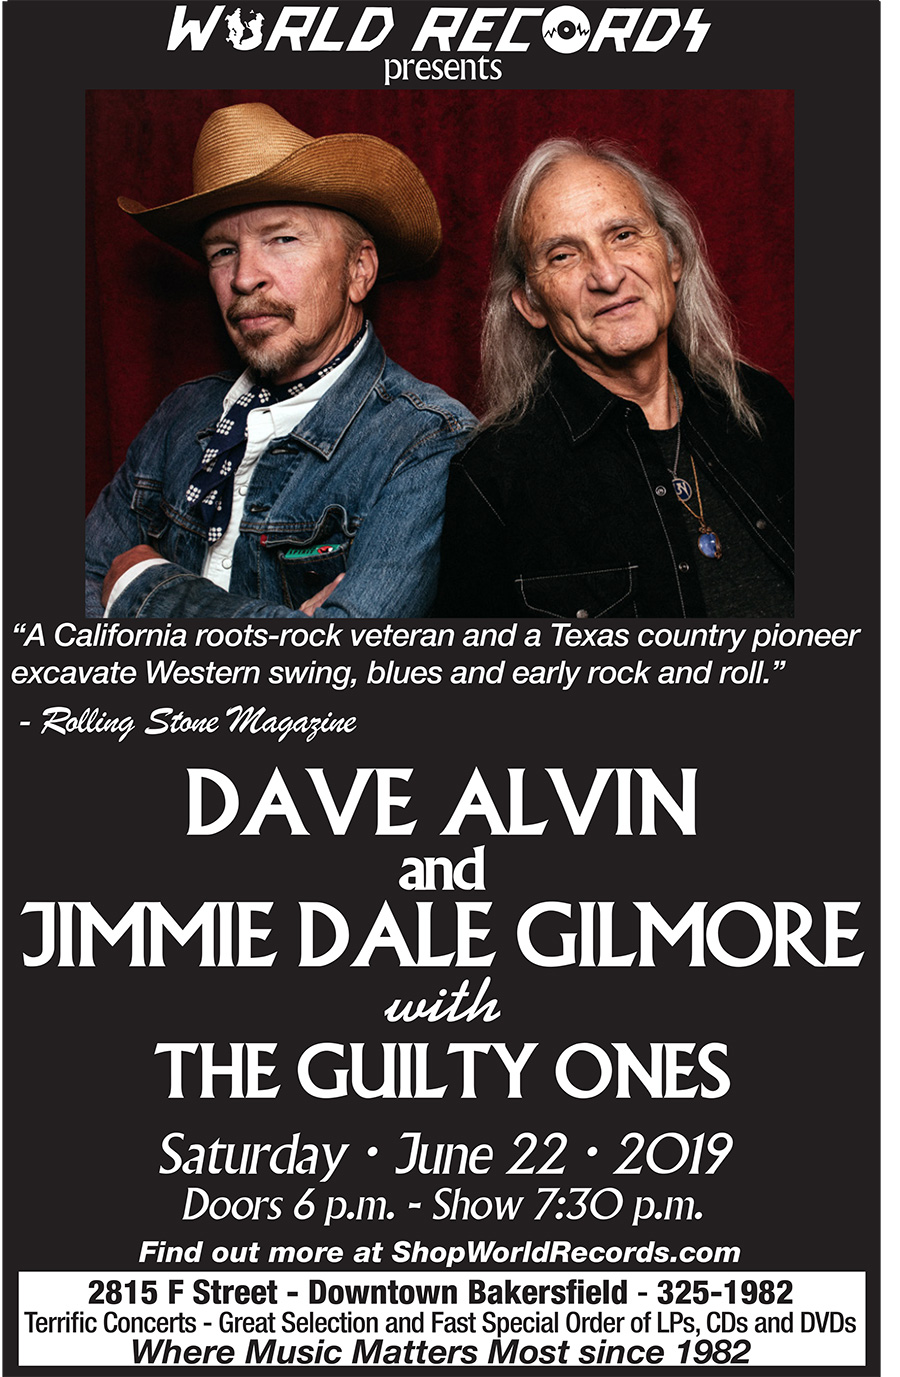 World records - Dave Alvin and Jimmie Dale Gilmore